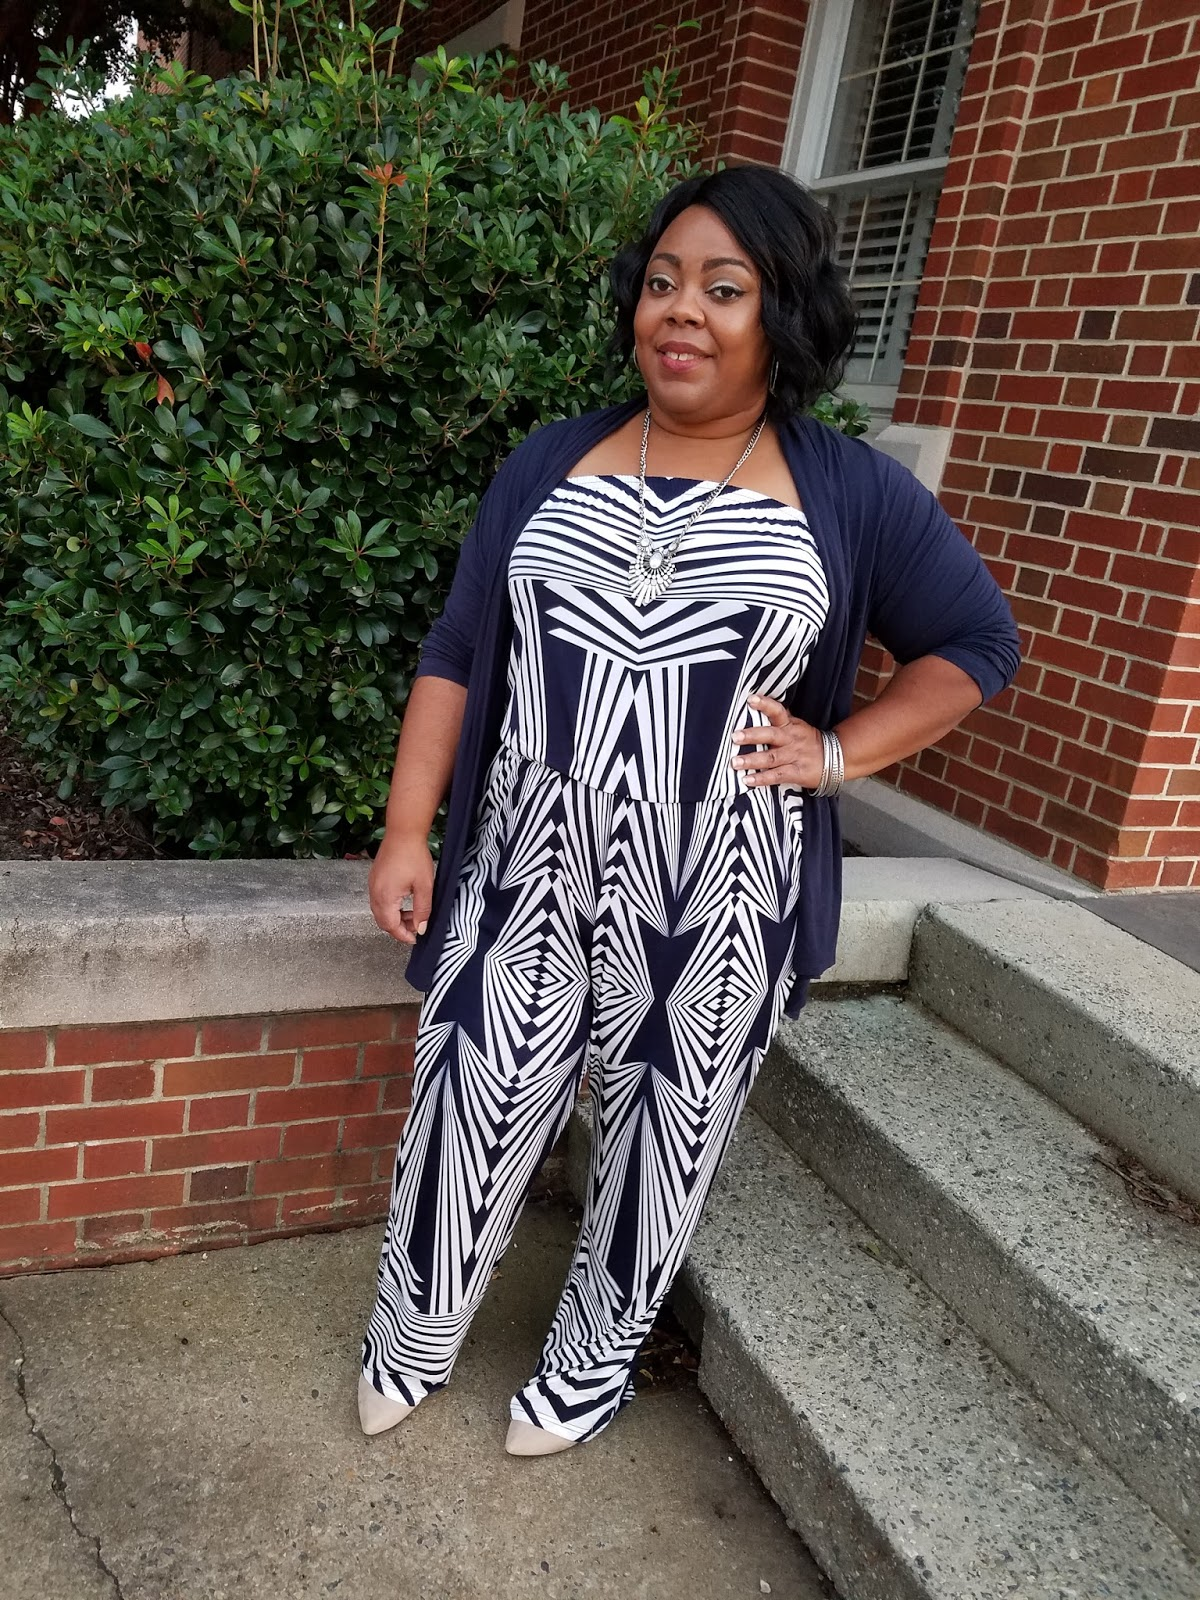 036a3dca394 Plus size blogger in geo-print jumpsuit